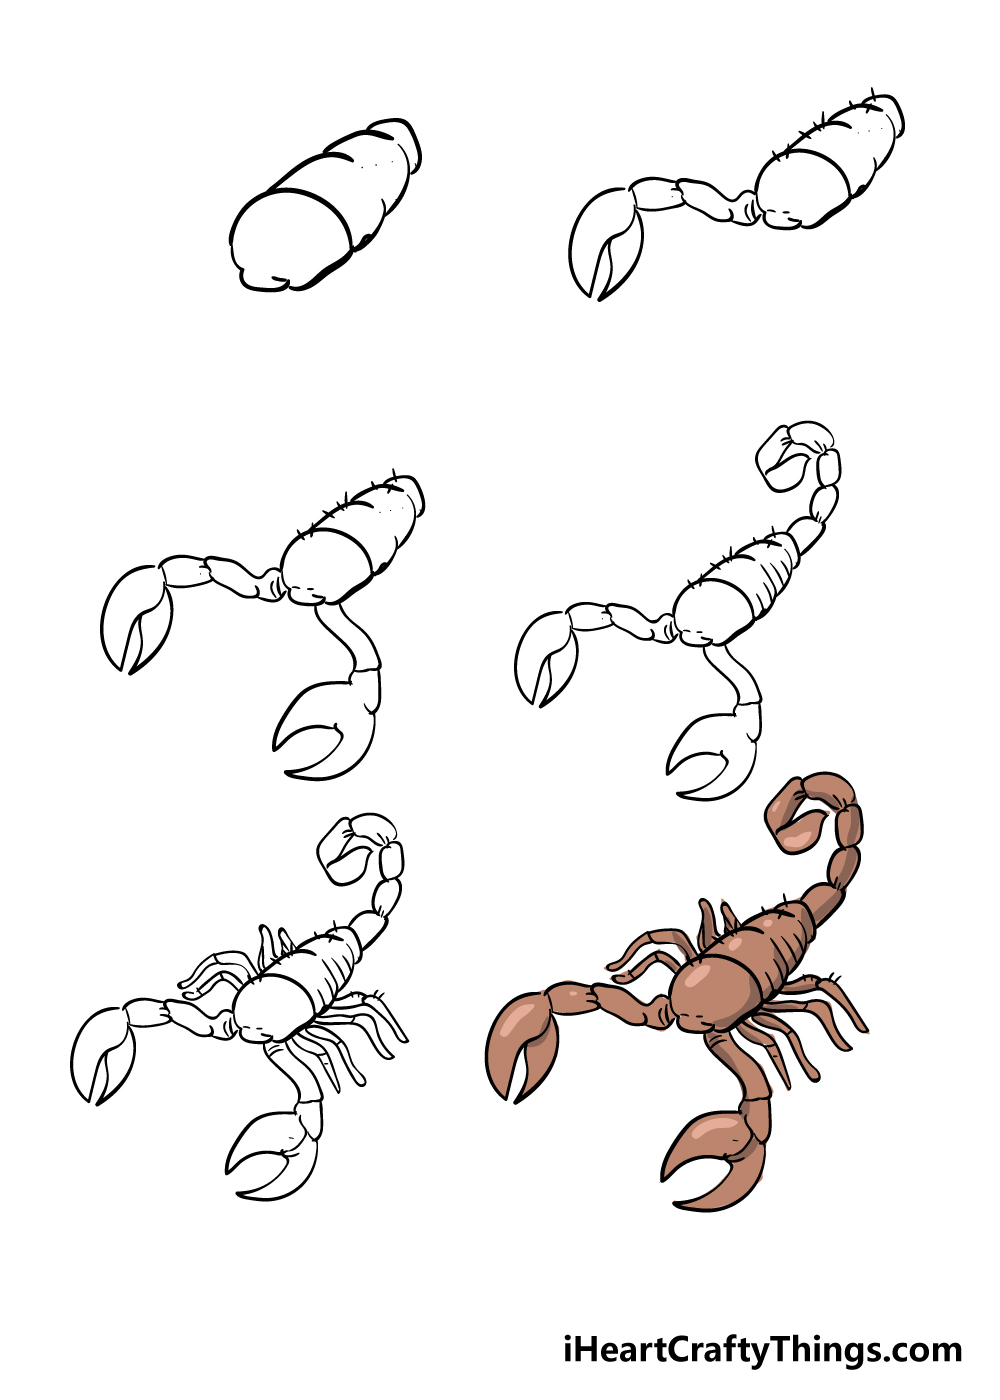 how to draw scorpion in 6 steps